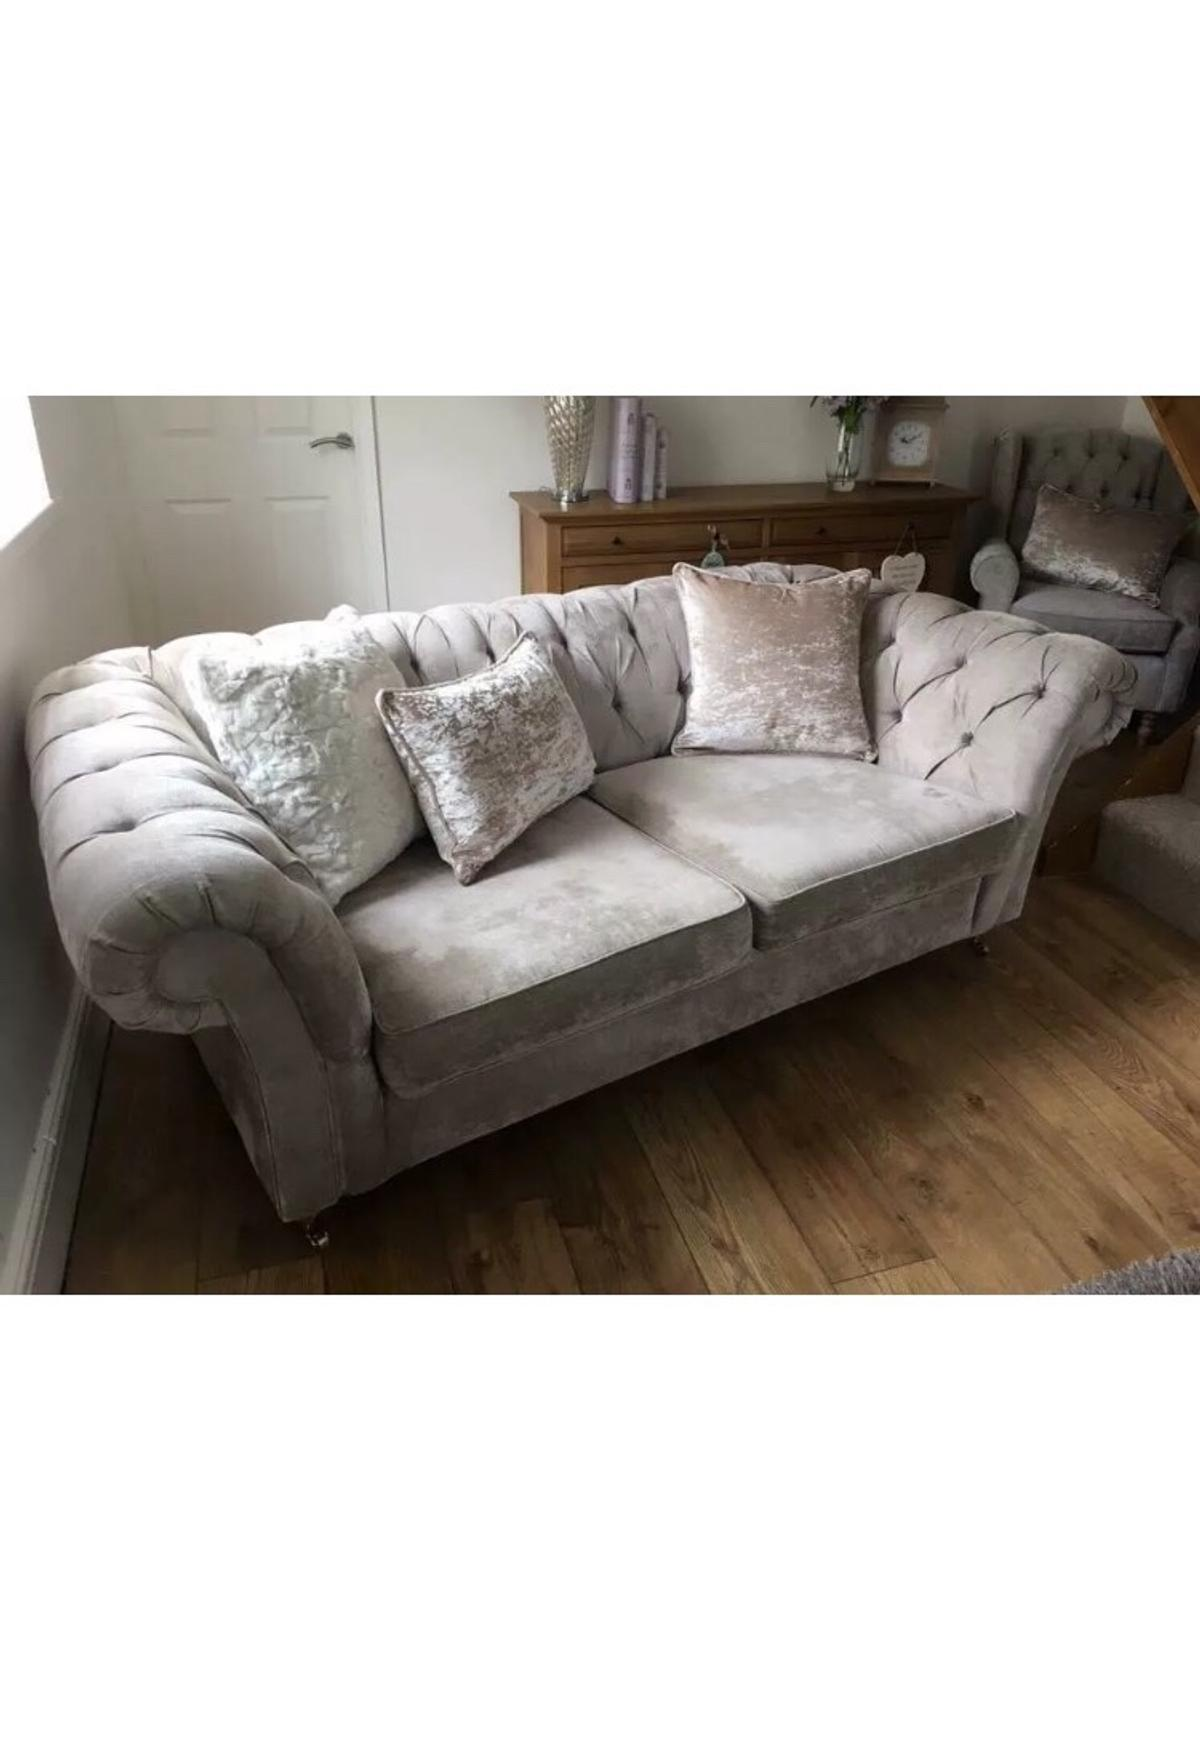 Next Gosford 3 Seater Sofa In L7 Liverpool For 500 00 For Sale Shpock